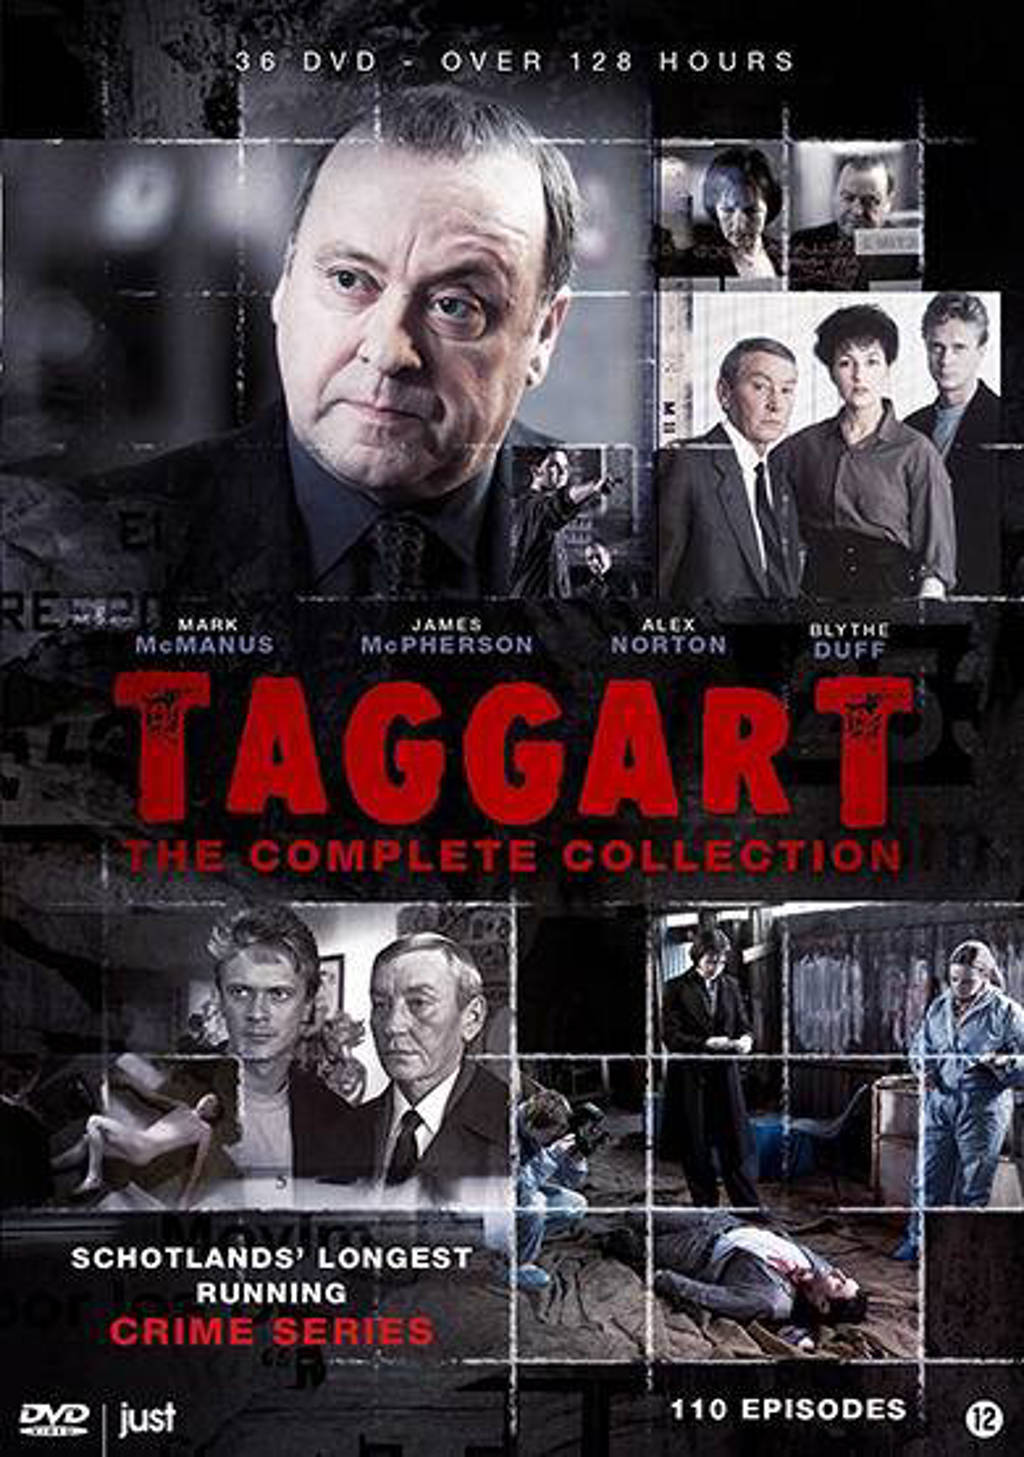 Taggart - Complete collection (DVD)